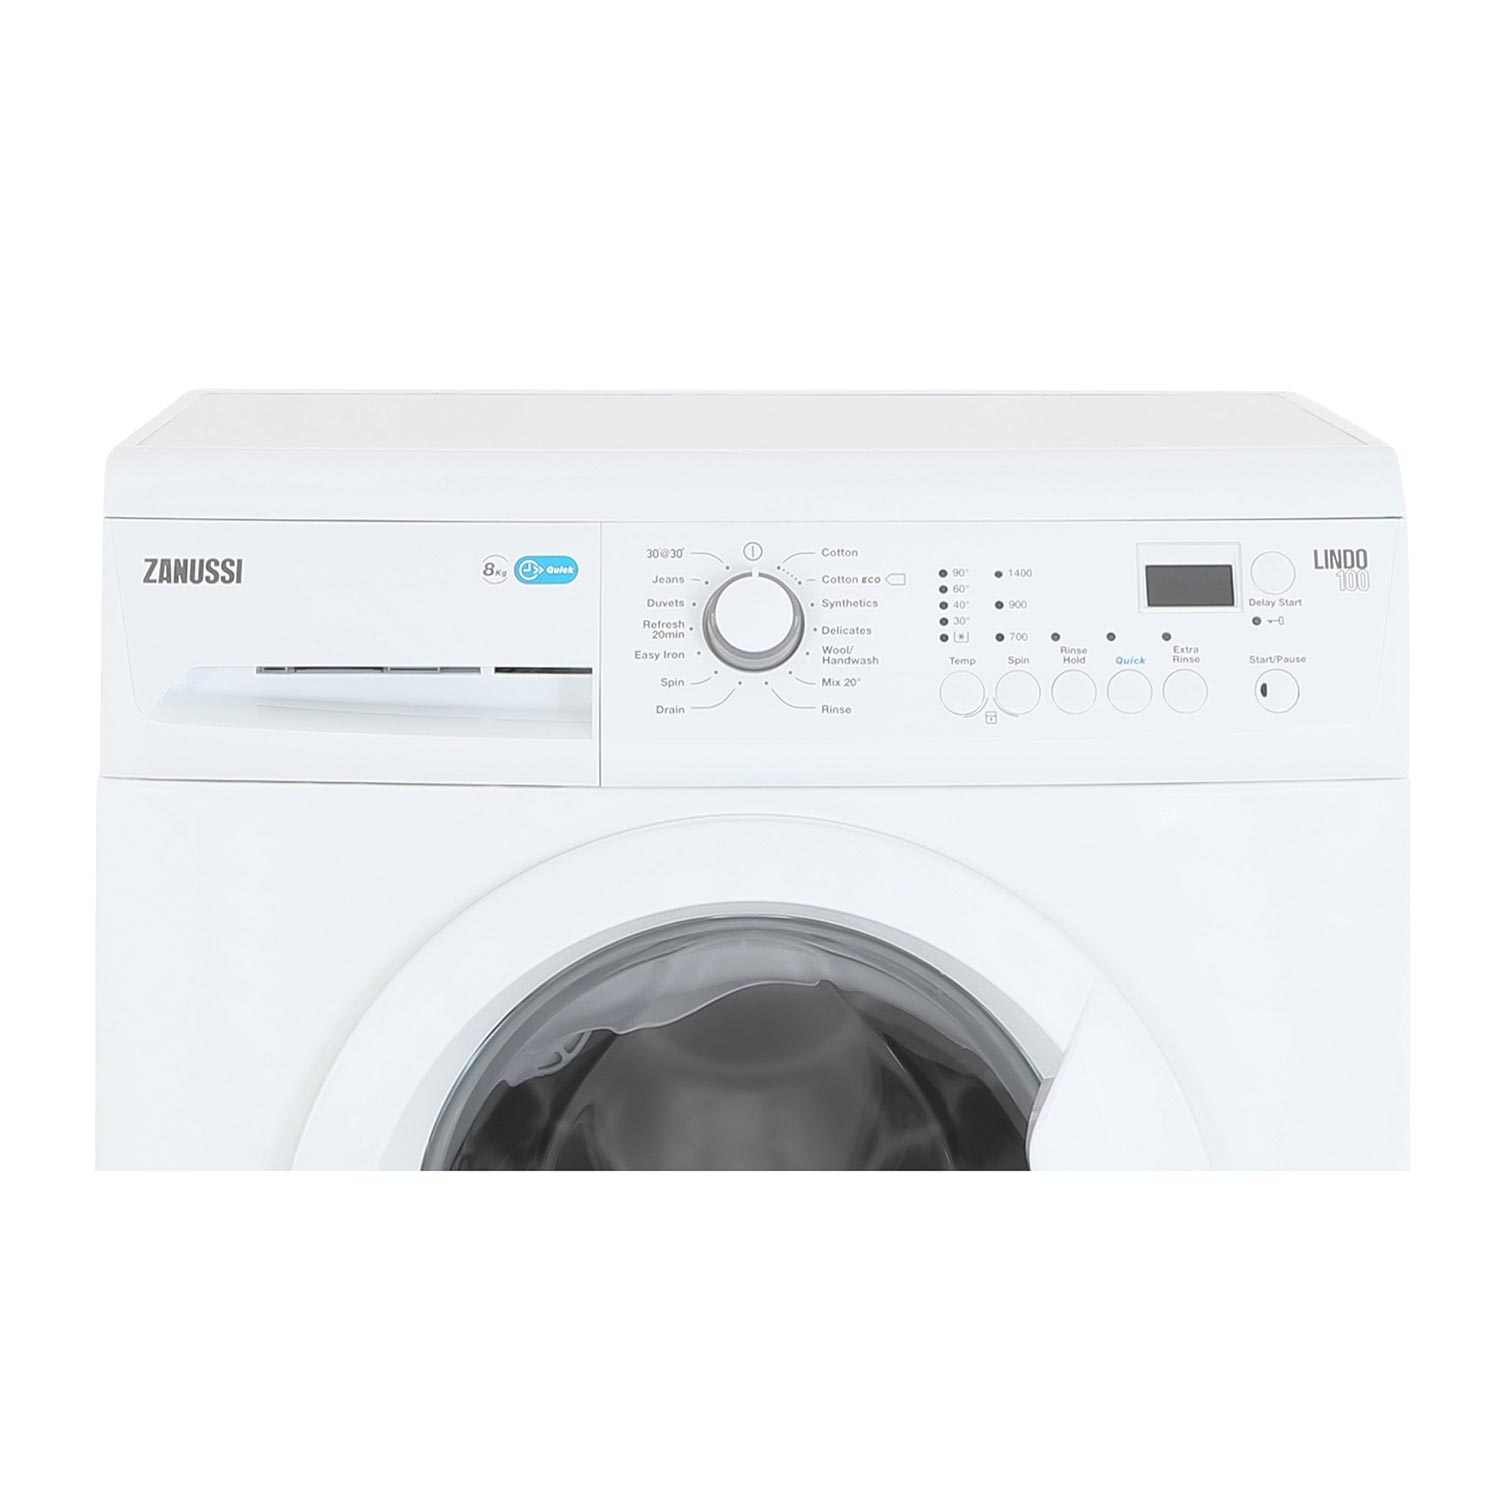 Zanussi 8kg 1400 Spin Washing Machine - White - A+++ Rated - 2